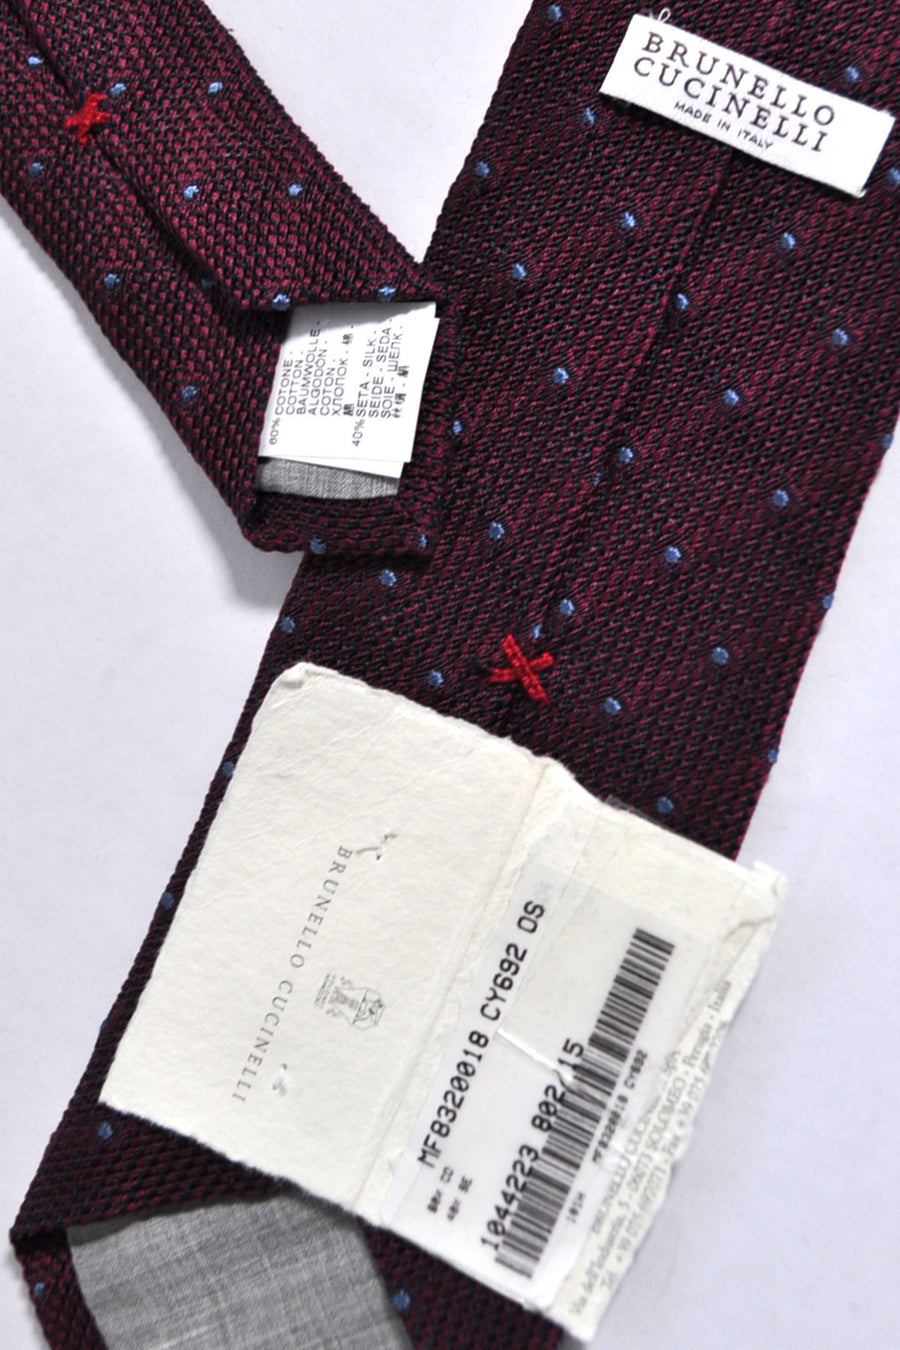 Brunello Cucinelli Tie Wine Purple Blue Dots Cotton Silk